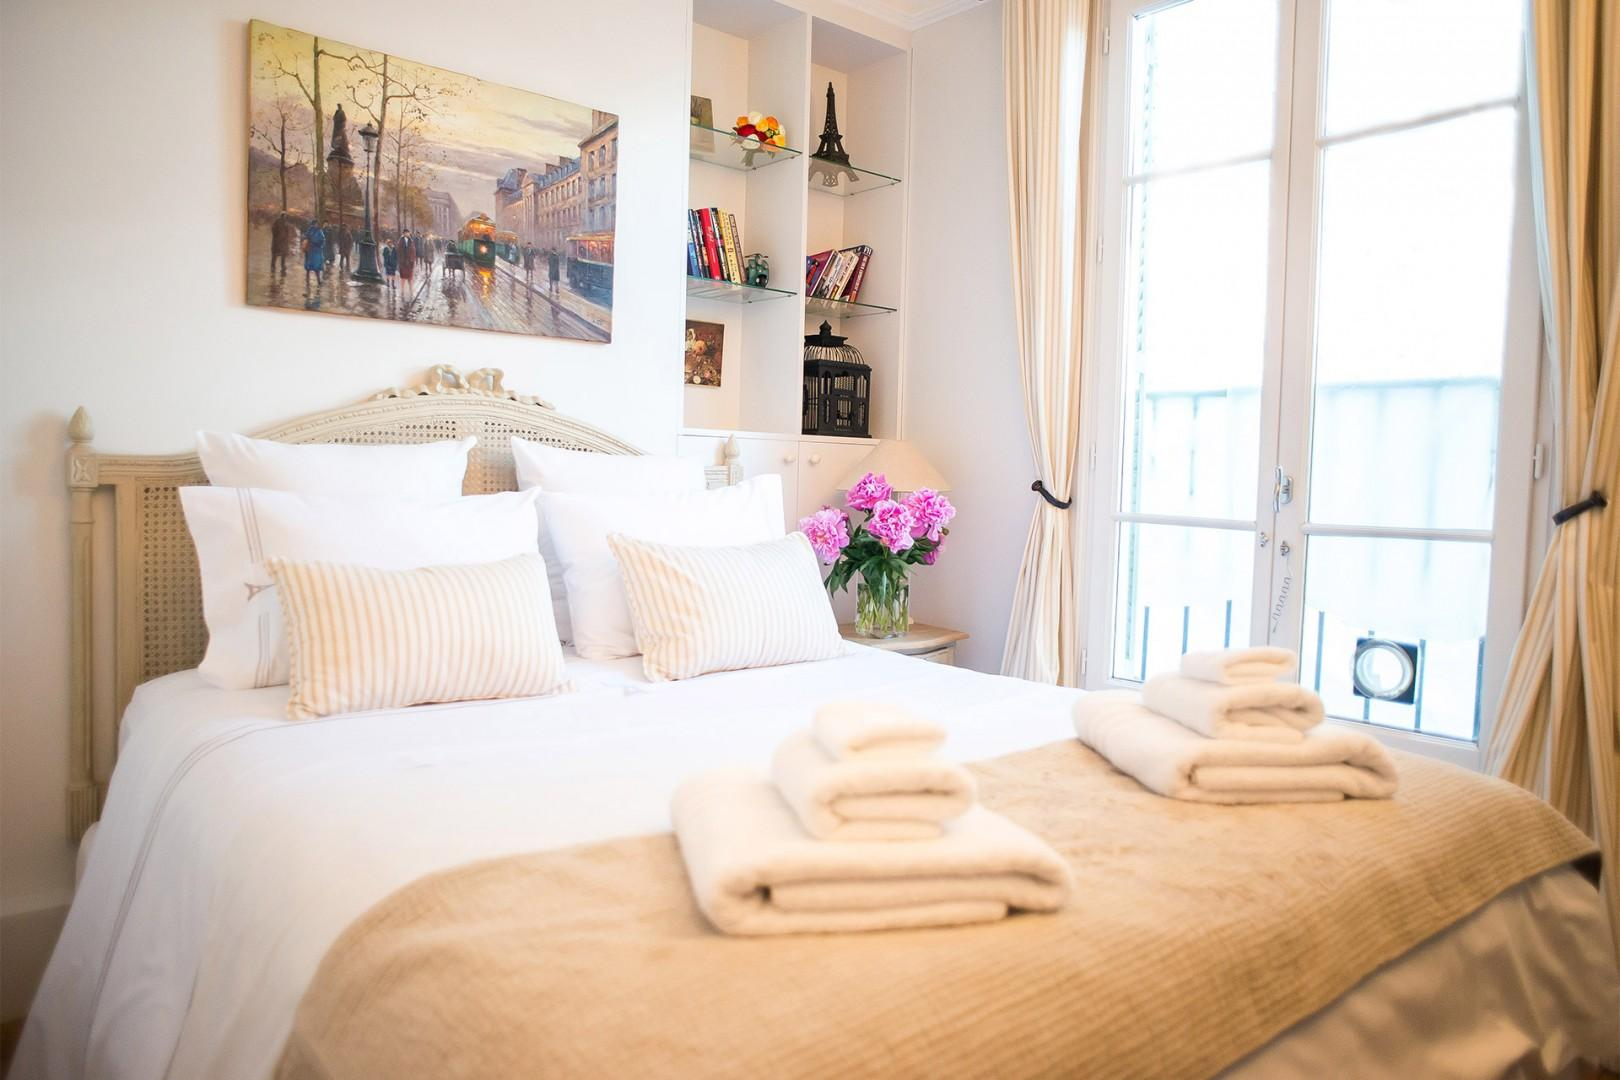 The cozy bedroom 2 is the perfect setting to relax and enjoy Parisian living.